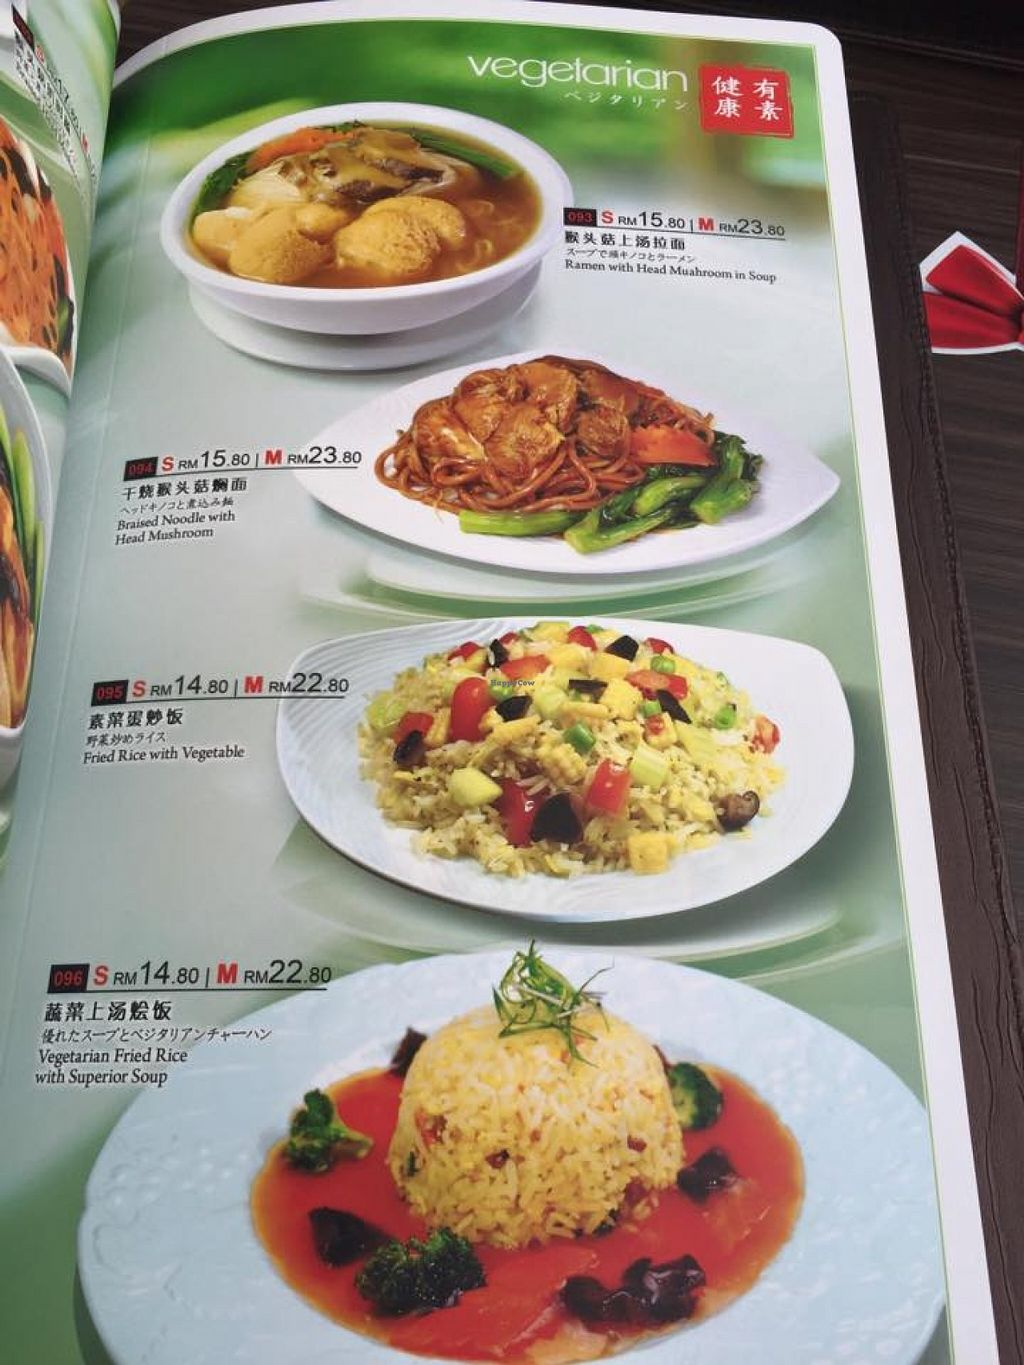 """Photo of Xuan Xin - Queensbay Mall  by <a href=""""/members/profile/walter007"""">walter007</a> <br/>menu <br/> October 9, 2015  - <a href='/contact/abuse/image/64298/120704'>Report</a>"""